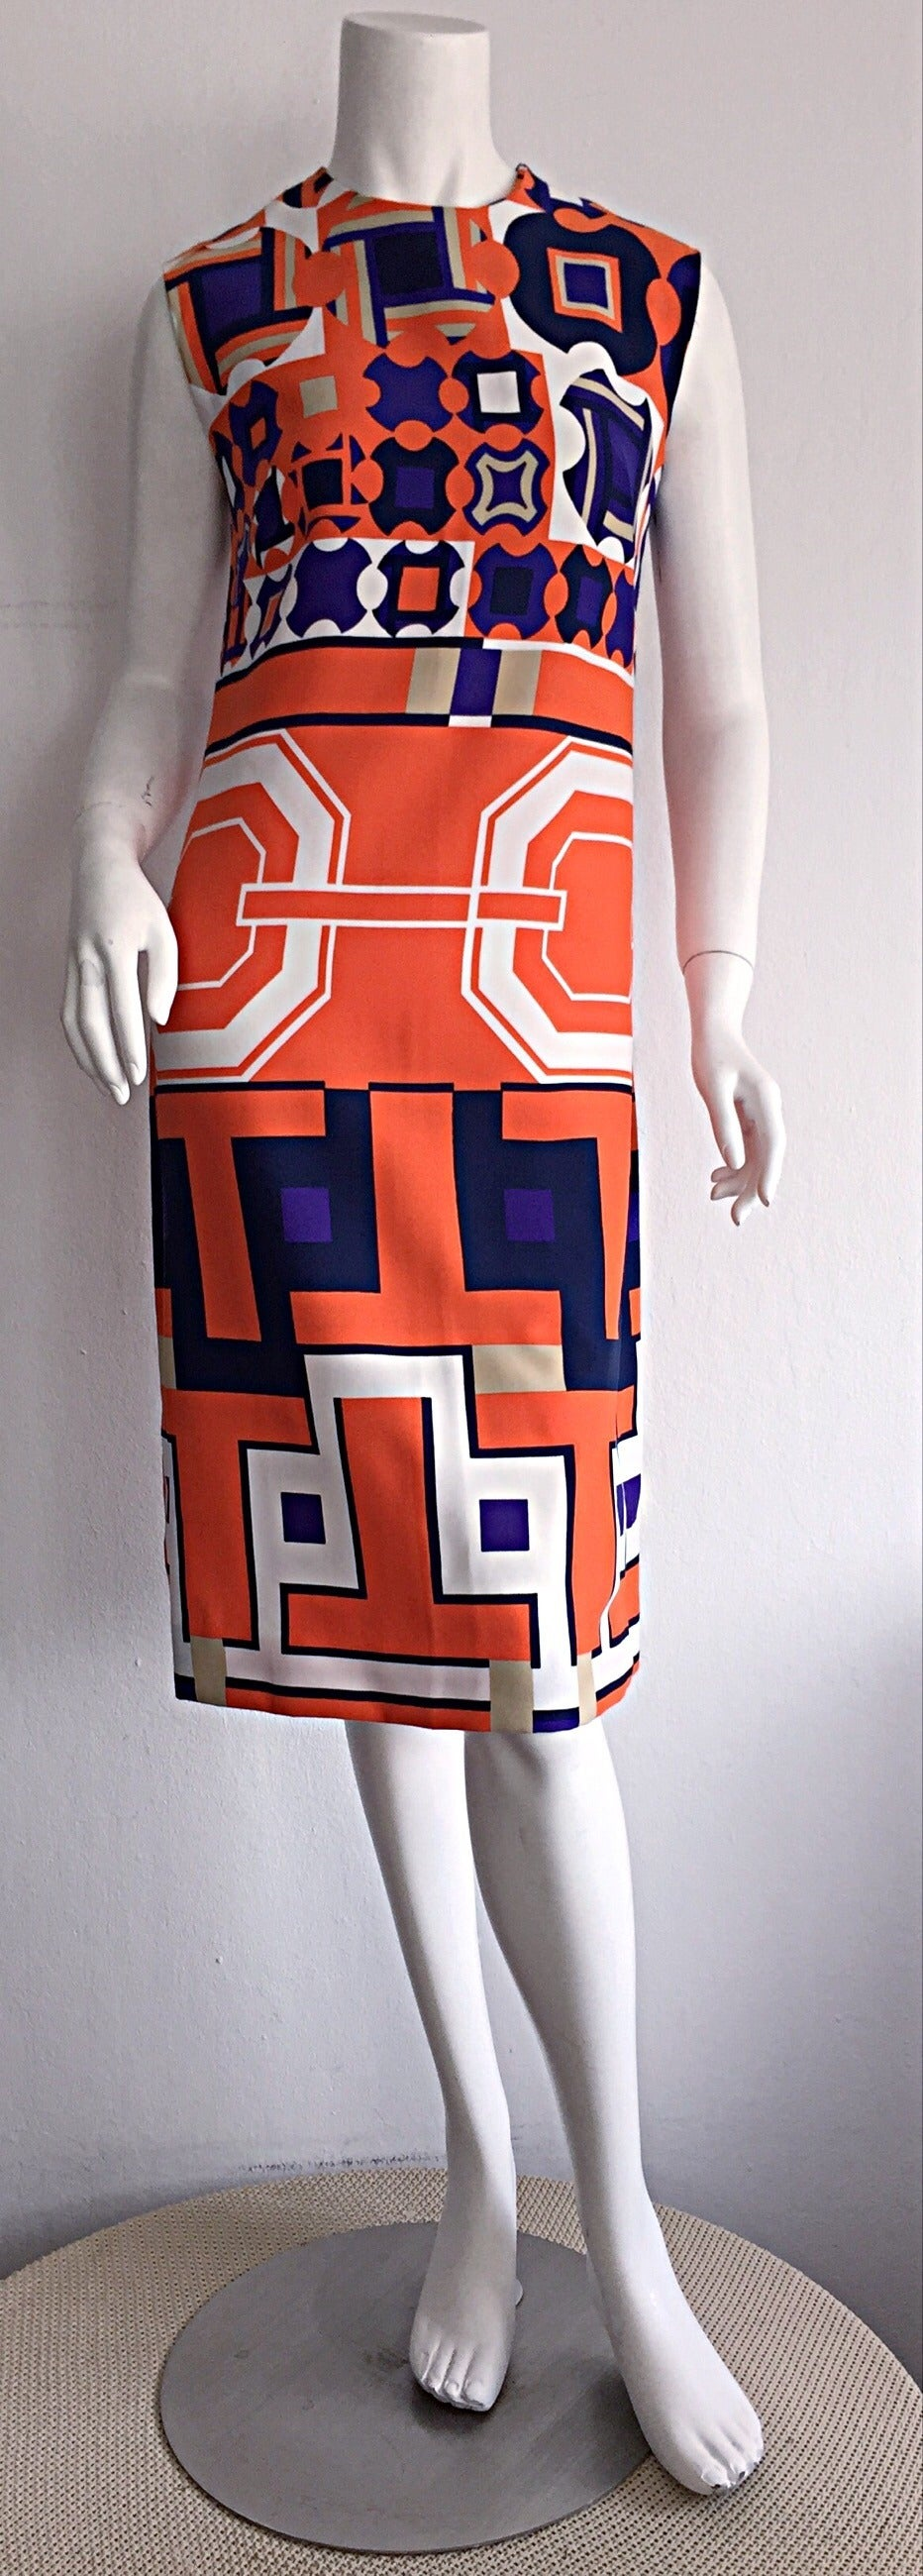 Absolutely stunning 1960s Lanvin dress! Ultra rare print, that Lanvin was so famous for creating! Chic hidden logo print on skirt of dress. Beautiful colors, with impressive 3-D effect. Easily goes from day to night, with sandals, wedges, boots, or